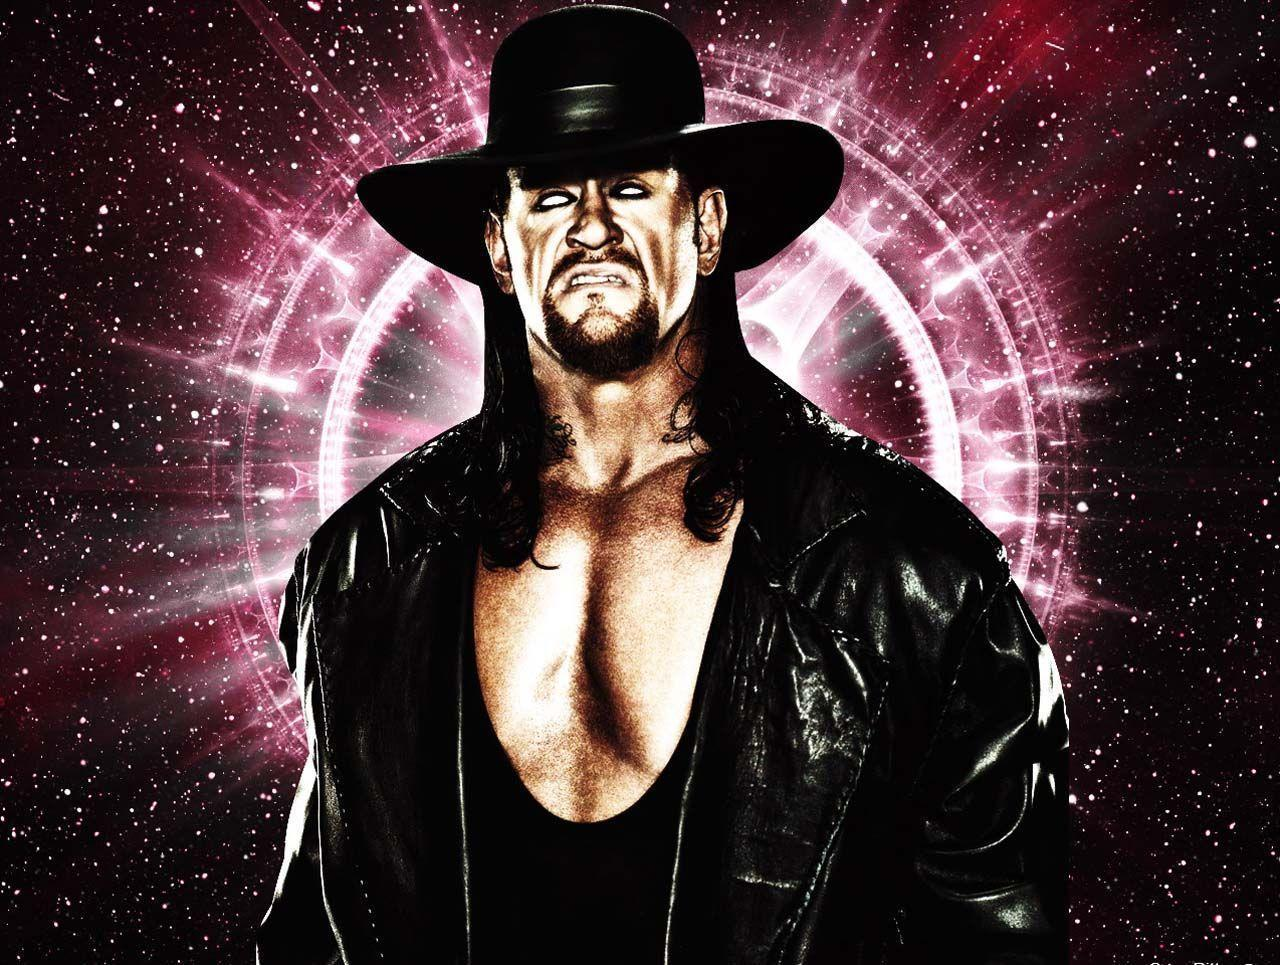 Undertaker 2017 Wallpapers - Wallpaper Cave